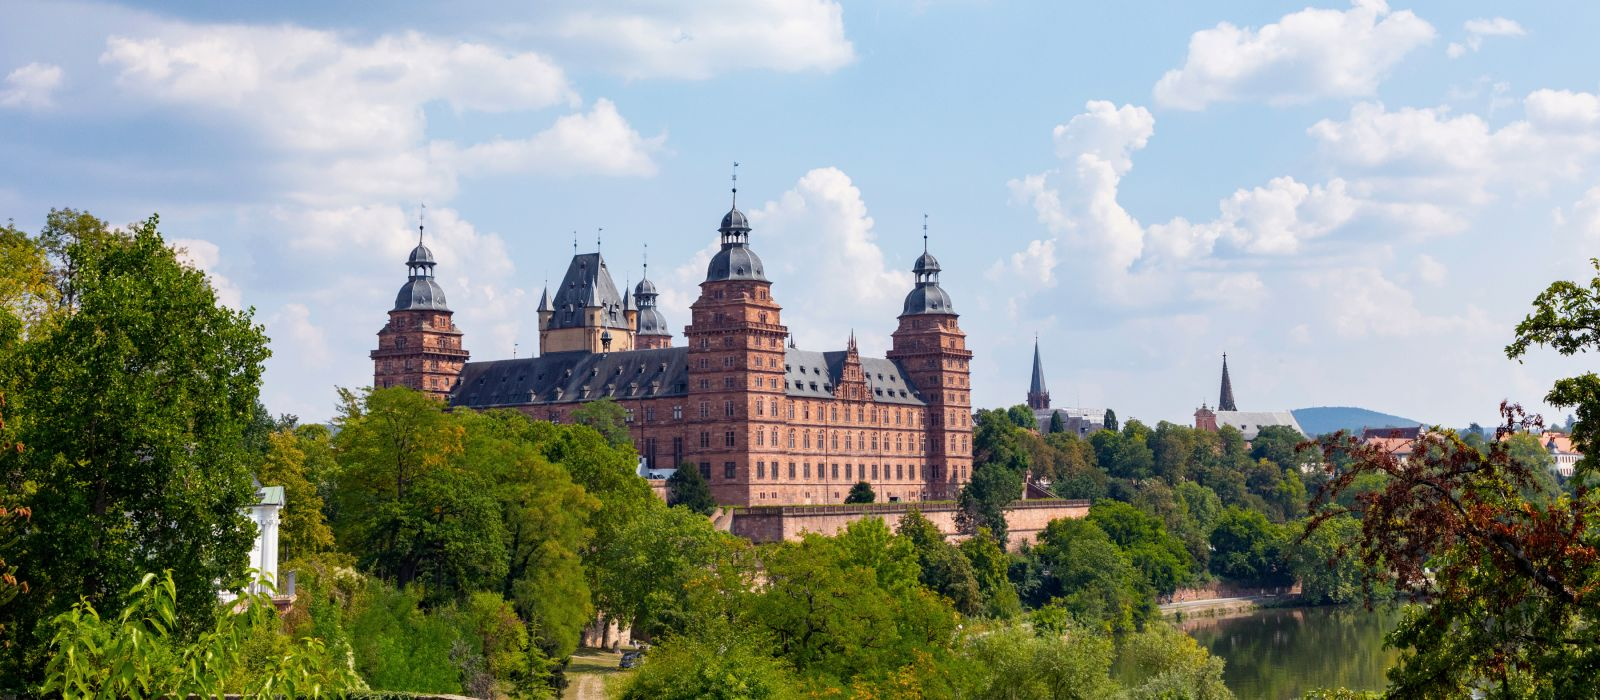 famous city castle in Aschaffenburg, Bavaria, Germany, Europe